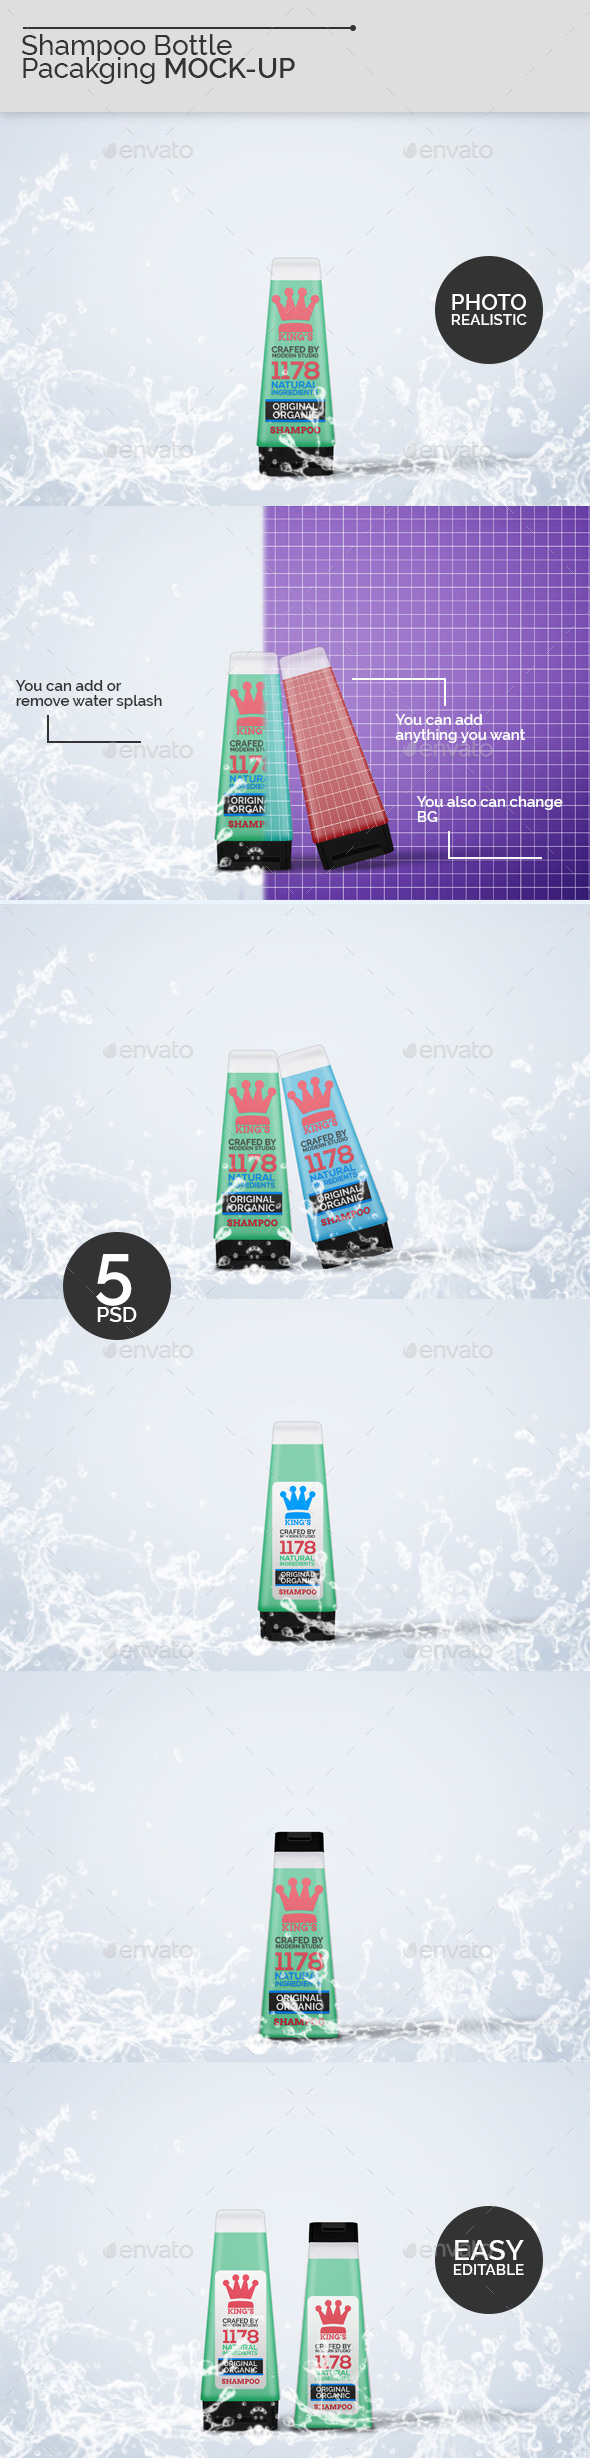 Shampoo Bottle Packaging Mock-Ups - Beauty Packaging